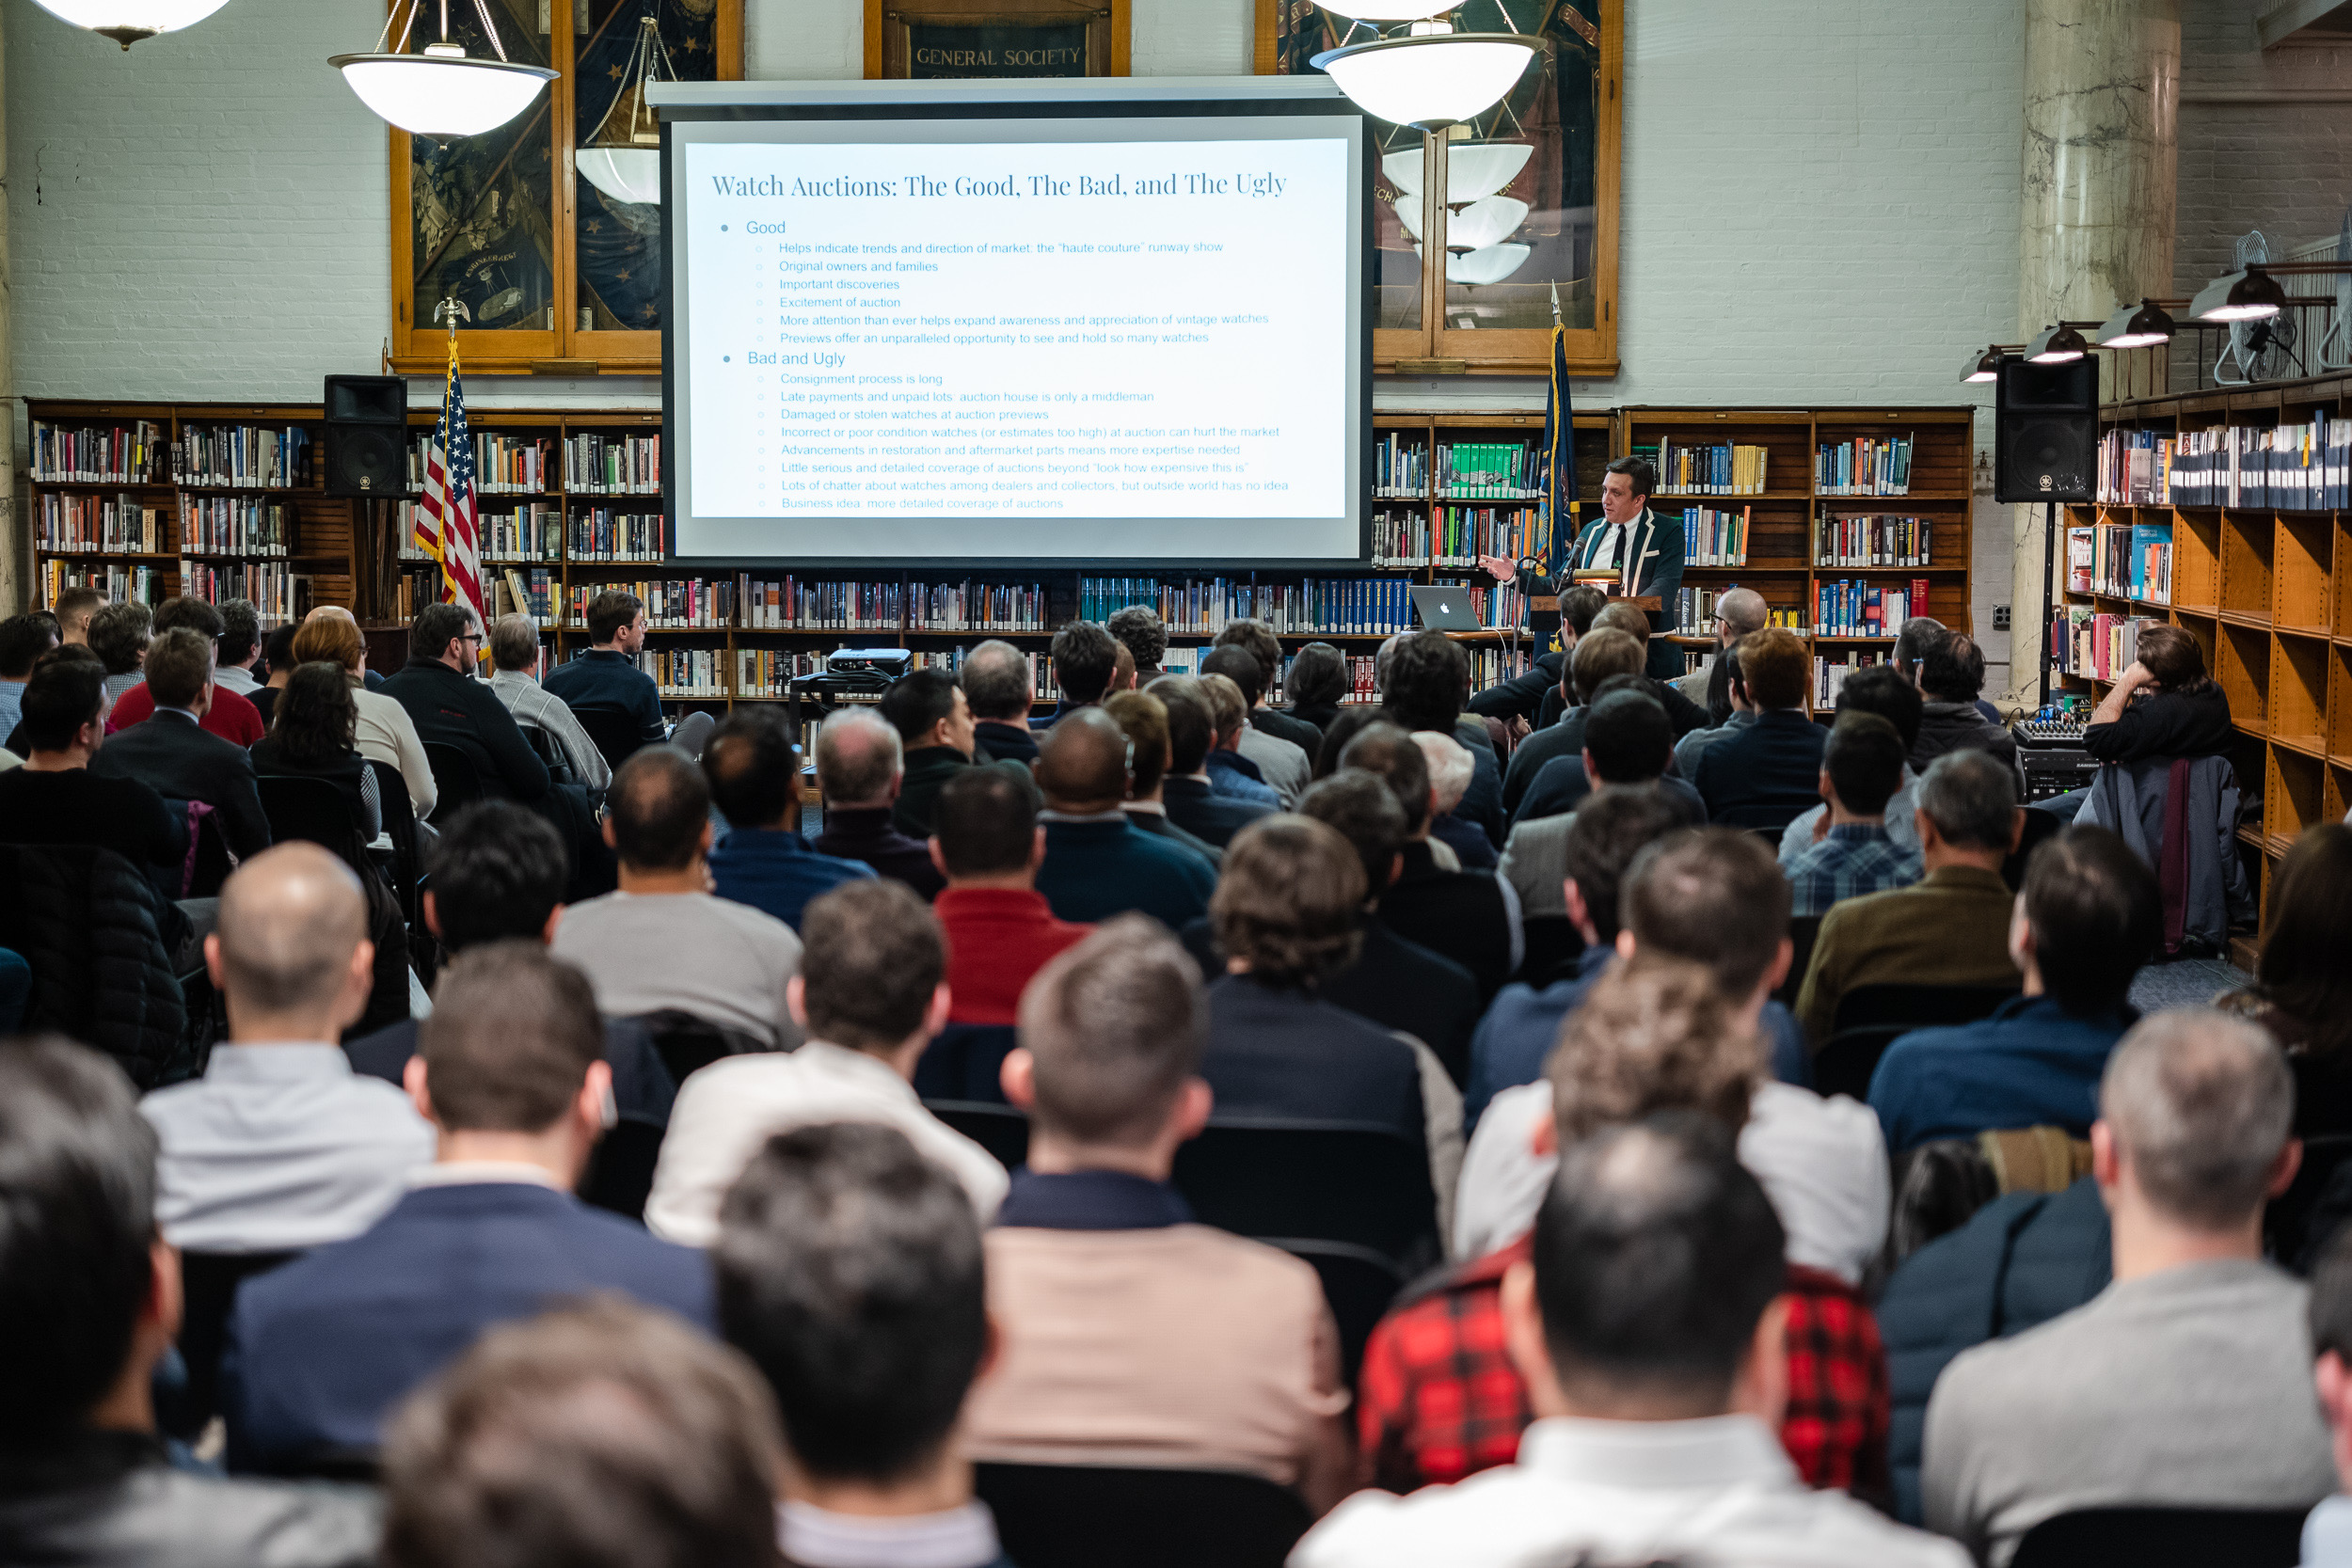 The record crowd at the Horological Society of New York's May Lecture. Photo by Atom Moore.